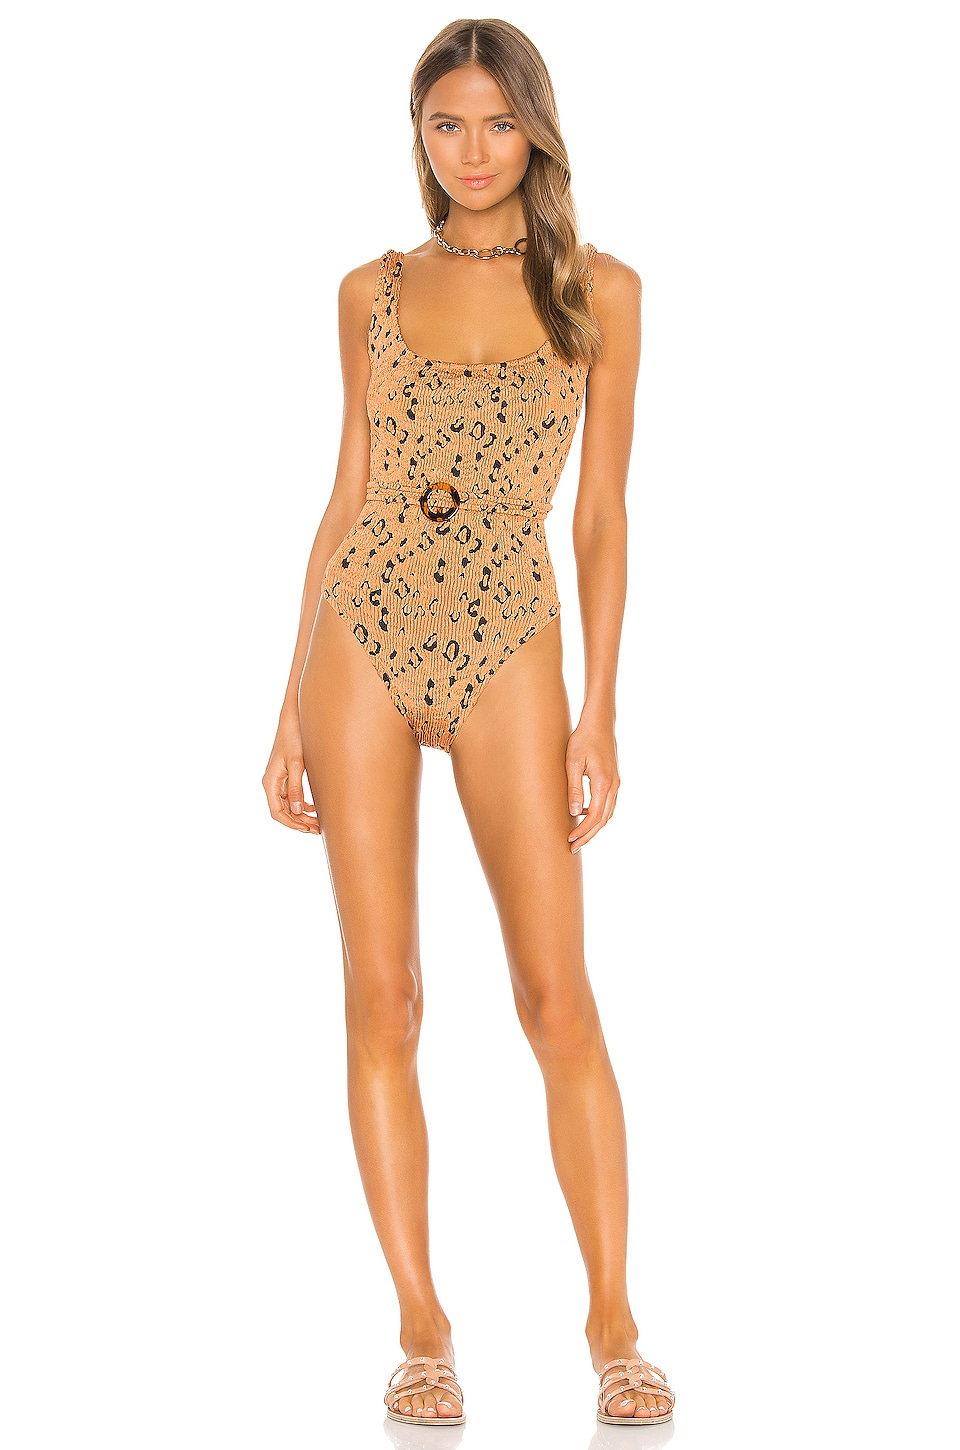 Hunza G Solitaire One Piece in Metallic Copper Leopard